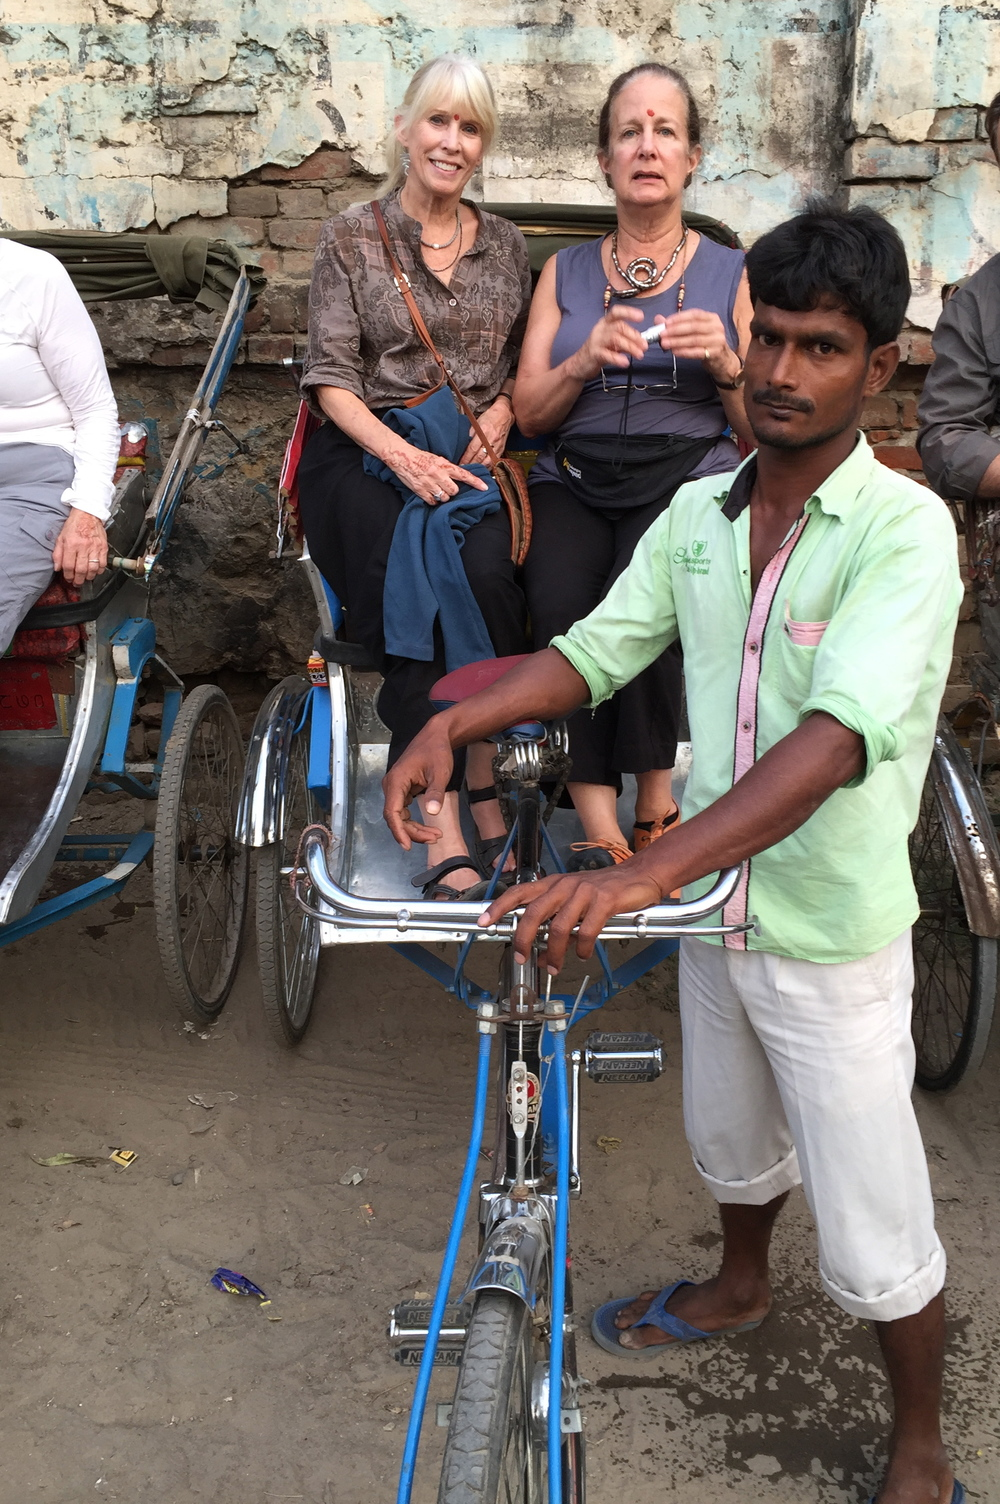 I'm seated with my friend Nina in a bicycle rickshaw, getting ready to travel through Old Varanasi to the Ganges boat launch. The return trip would be hair-raising...